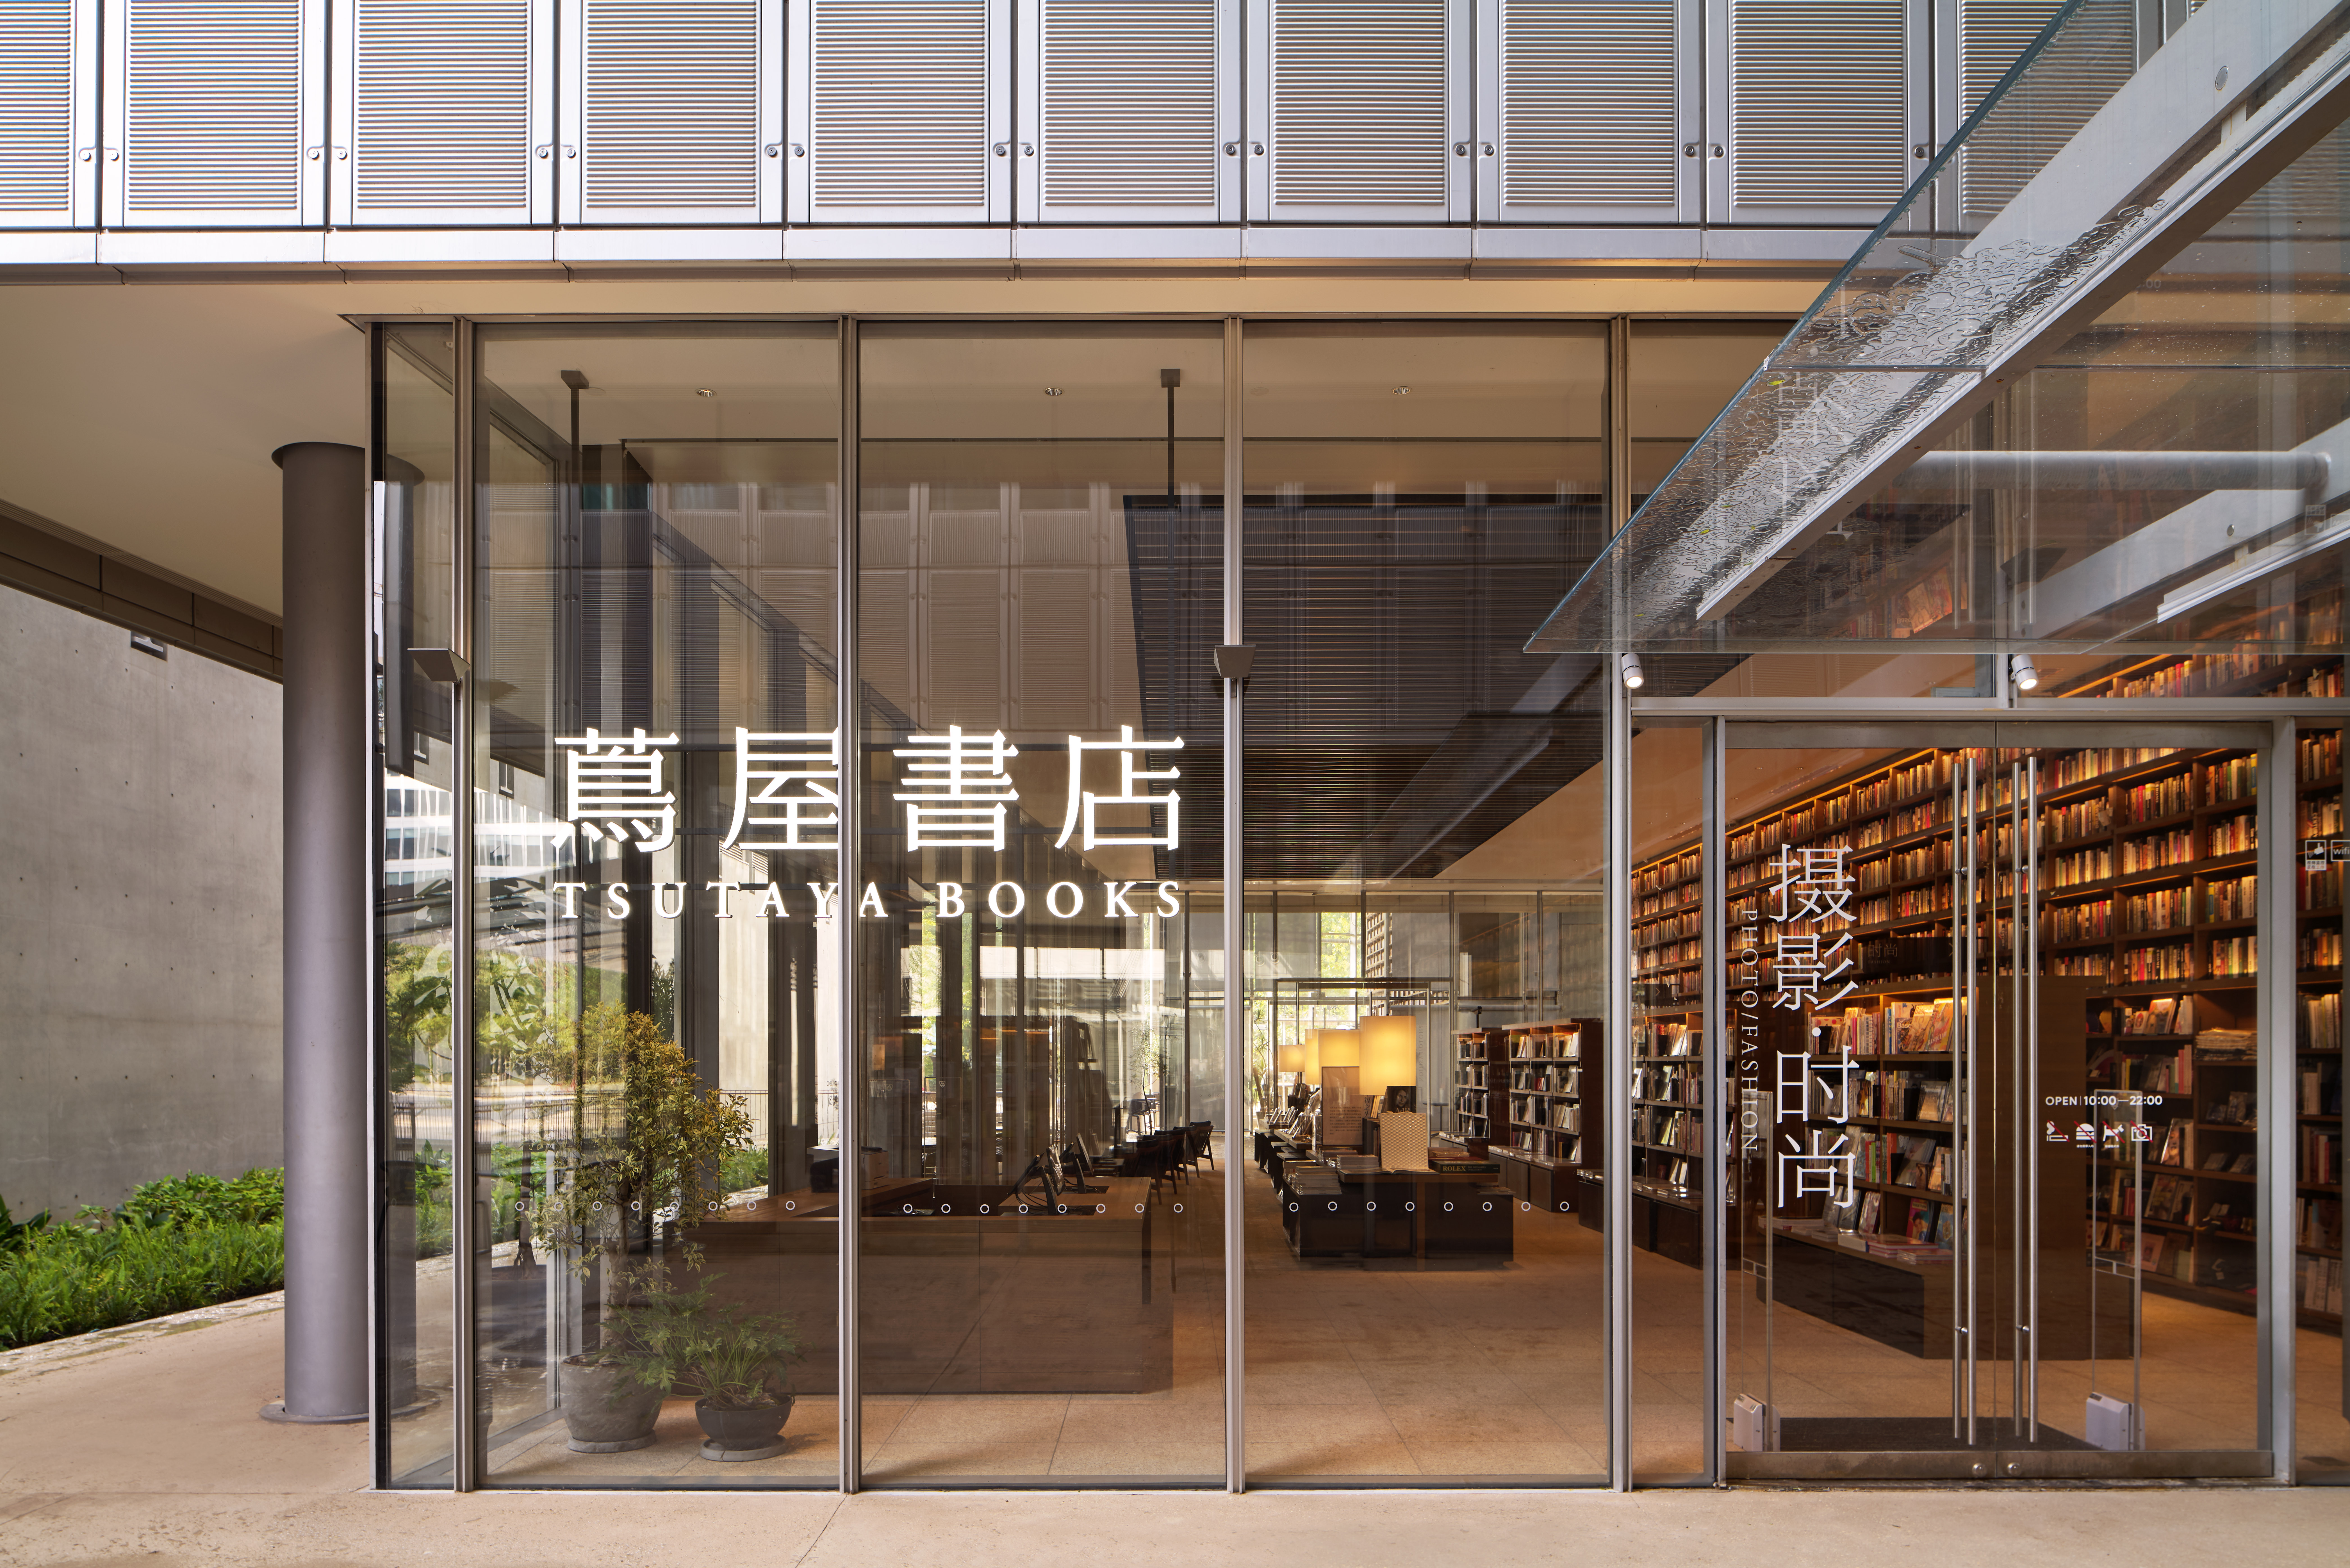 Tsutaya Books' first store in China in JNBY Group's headquarter OōEli.